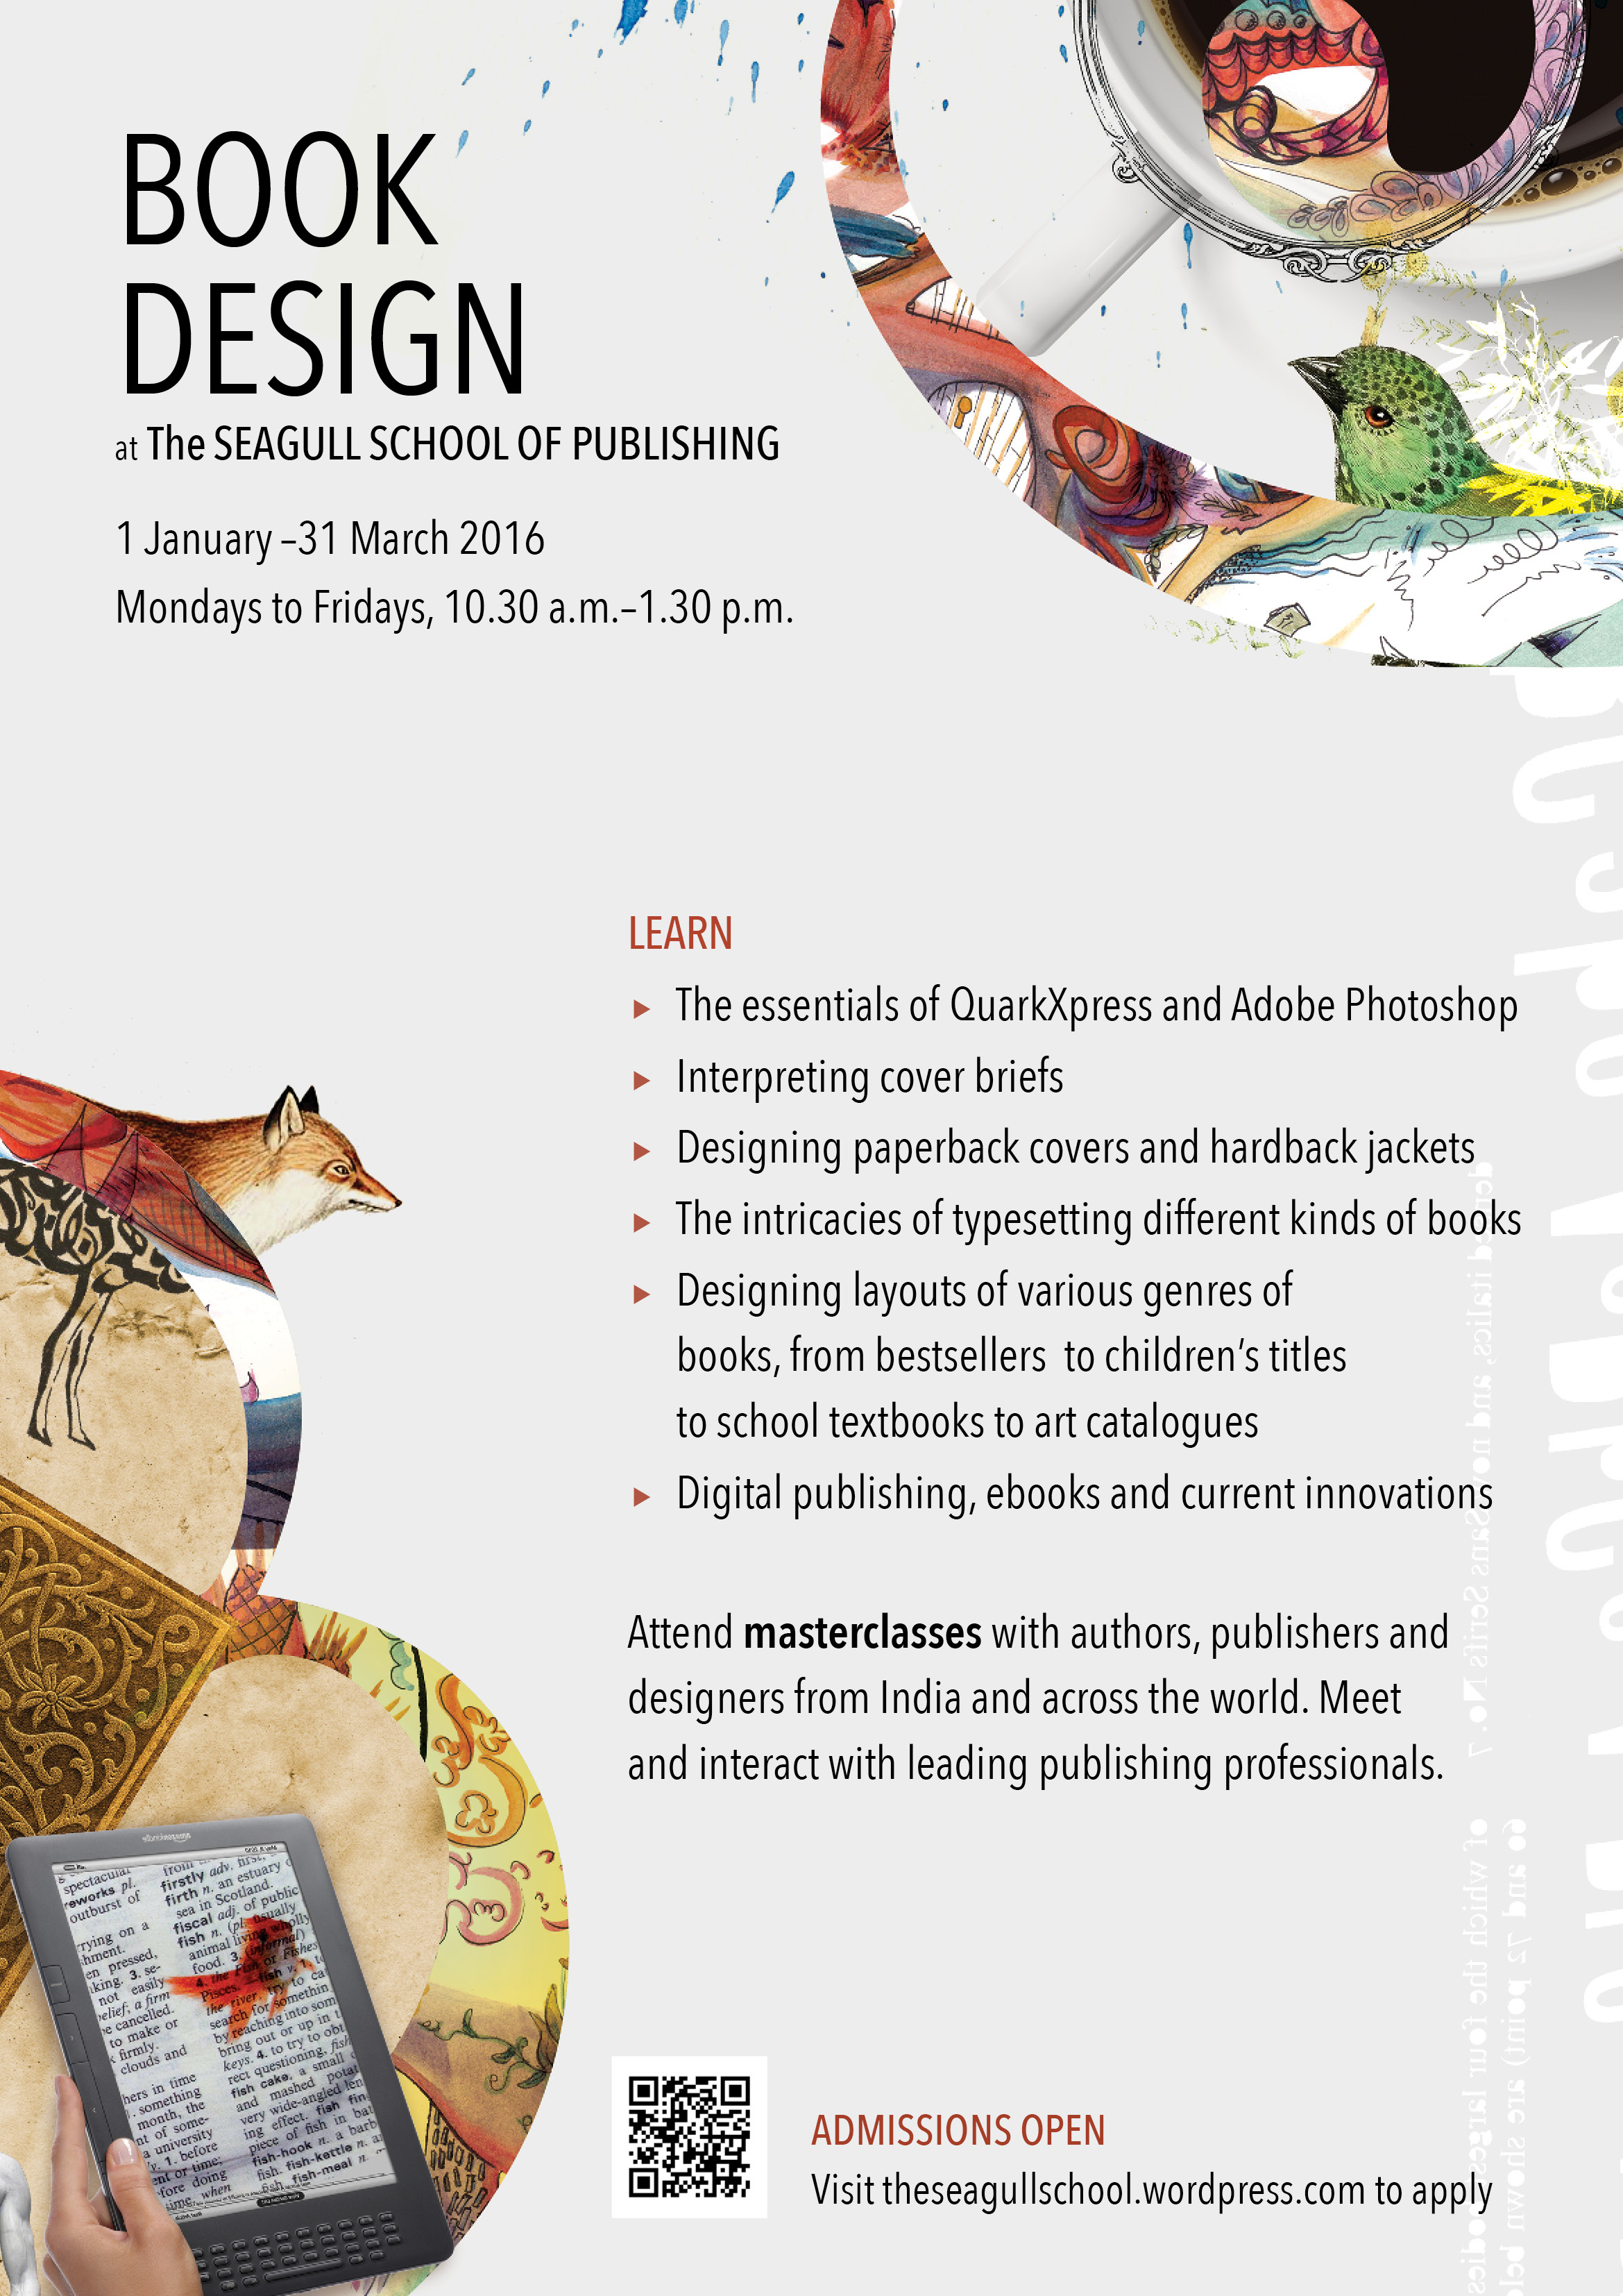 Learn the Art of Book Design and Editing from Leading Professionals @ Seagull School of Publishing: Admissions Open